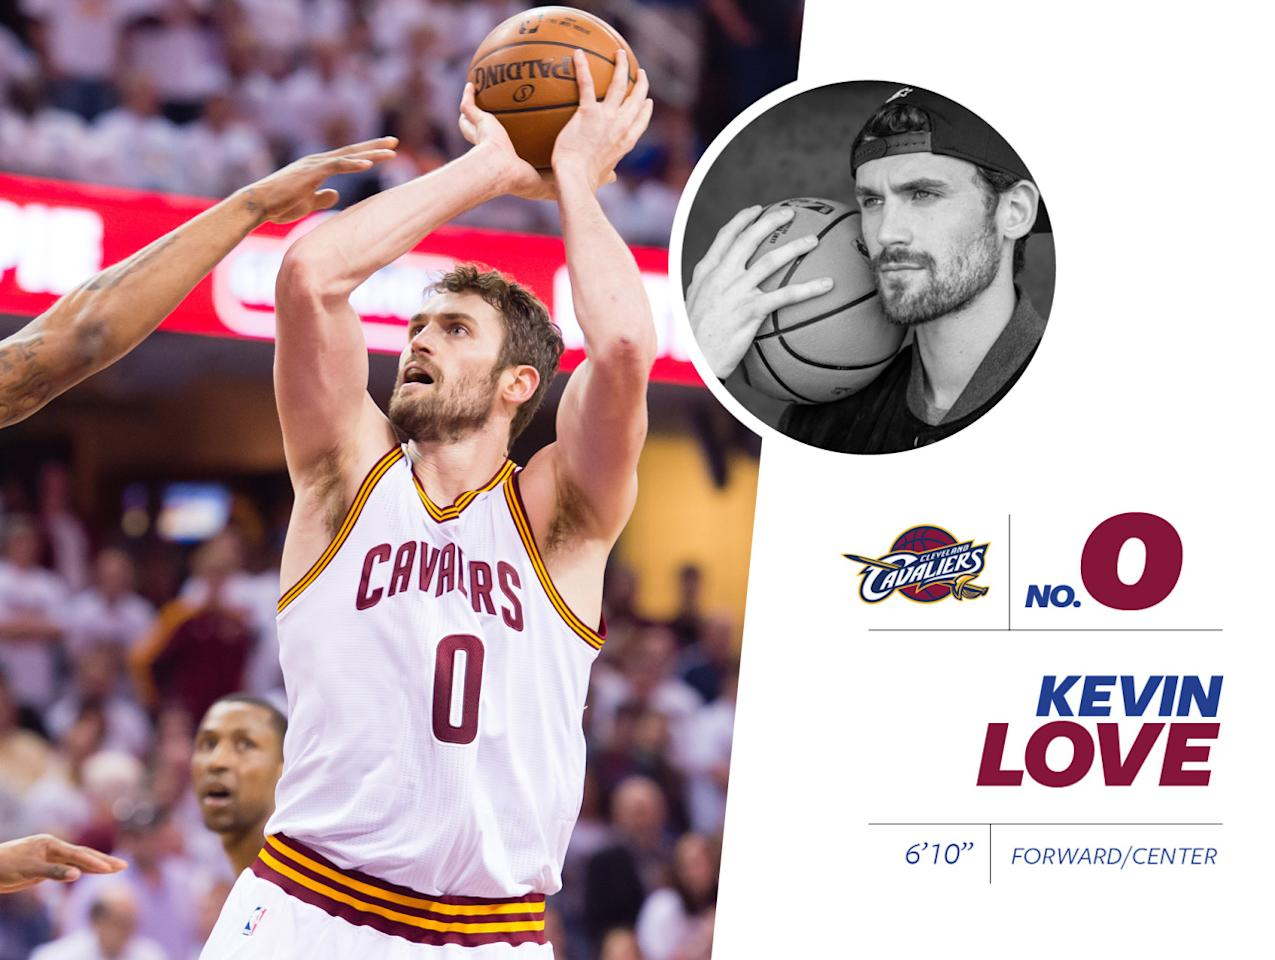 "<p>Cavaliers' No. 0 player, Kevin Love, is notably one of the sexiest men in the NBA, once posing <a href=""http://espn.go.com/nba/story/_/page/bodykevinlove/cleveland-cavaliers-power-forward-kevin-love-strips-espn-magazine-body-issue"">nude on the cover of ESPN's Body Issue in 2015</a>. He looked good. Love comes from a family of athletes — his father is <a href=""https://en.wikipedia.org/wiki/Stan_Love_(basketball)"">a former L.A. Laker</a> — and has an all-American look. Check out his <a href=""https://www.instagram.com/p/5lbUO3M90b/?taken-by=kevinlove&hl=en"">patriotic off-court style</a> and enviable <a href=""https://www.instagram.com/p/9m_Pb9M93G/?taken-by=kevinlove&hl=en"">mustache</a>. <i>Photo: Getty Images / Instagram.com</i></p>"